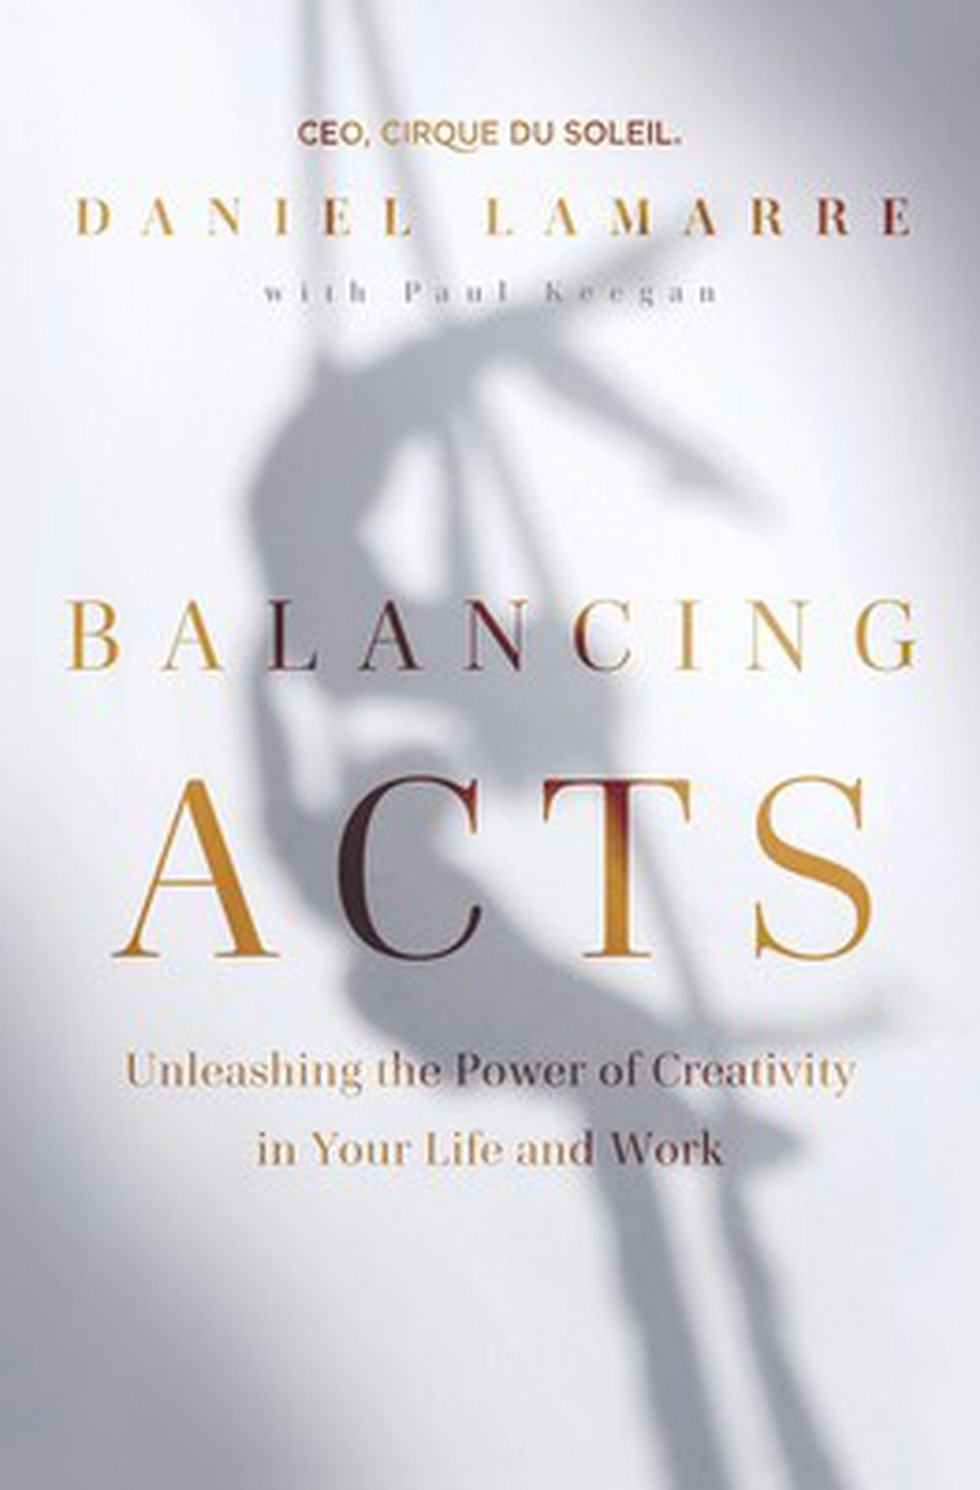 Balancing Acts: Unleashing the Power of Creativity in Your Life and Work by Daniel Lamarre.